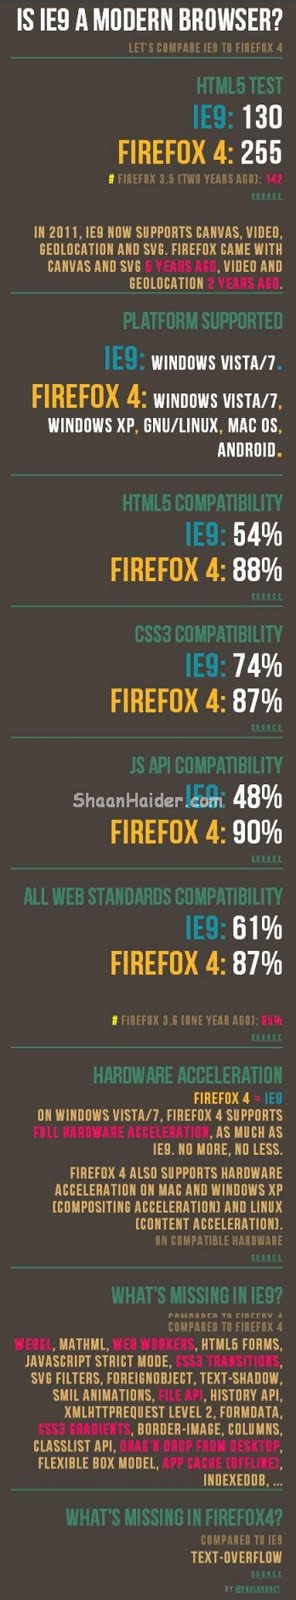 IE9 v/s Firefox4 (Features Comparison)